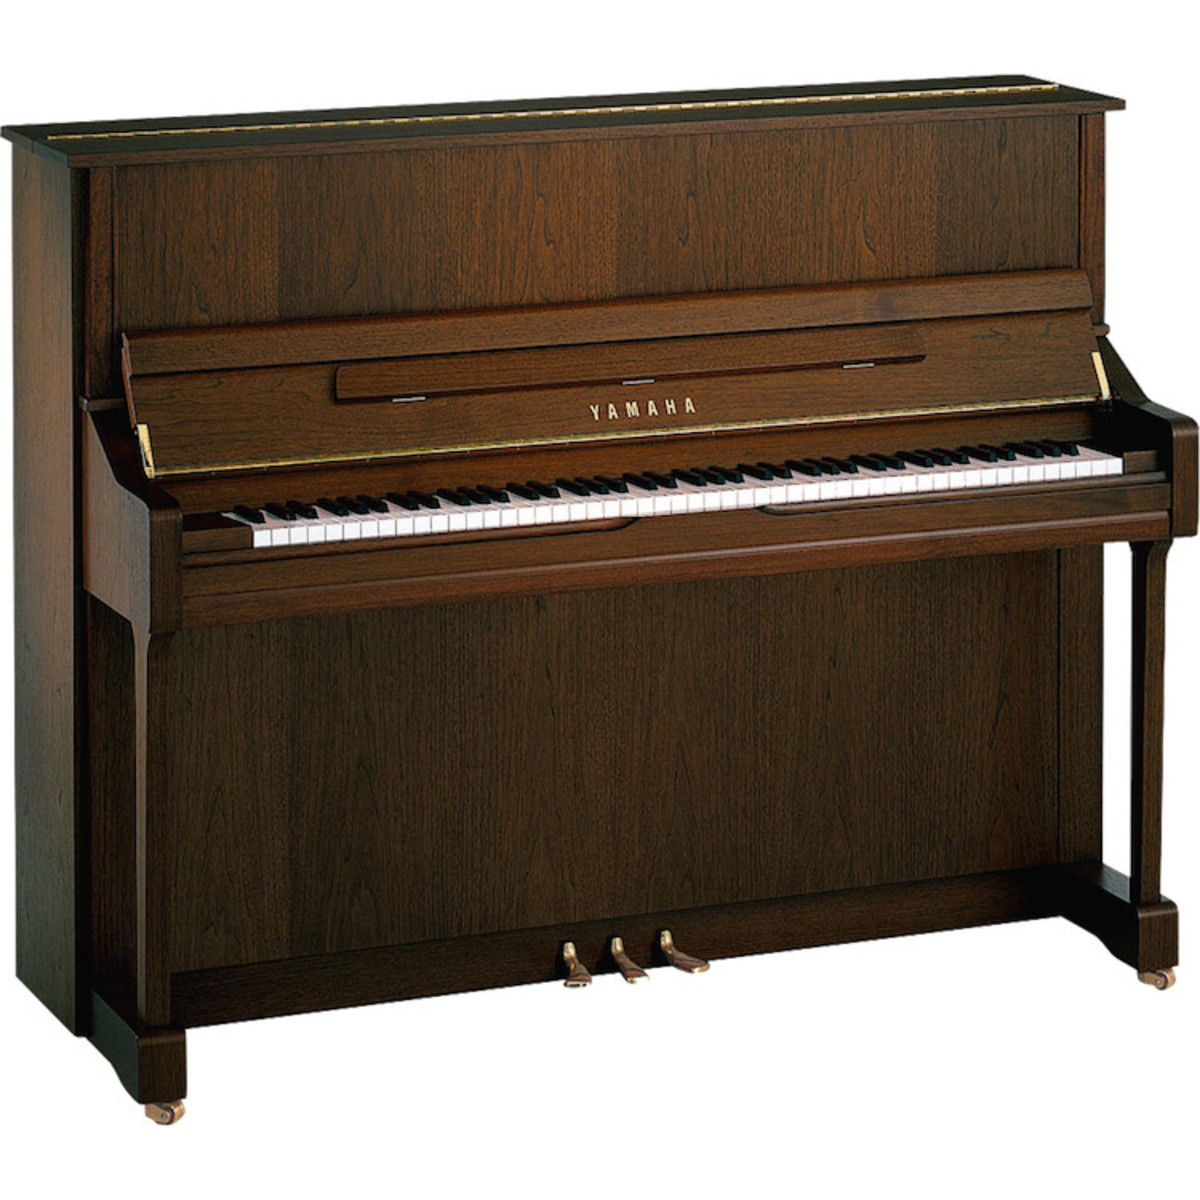 Yamaha b3 upright acoustic piano dark walnut satin at for Yamaha piano upright